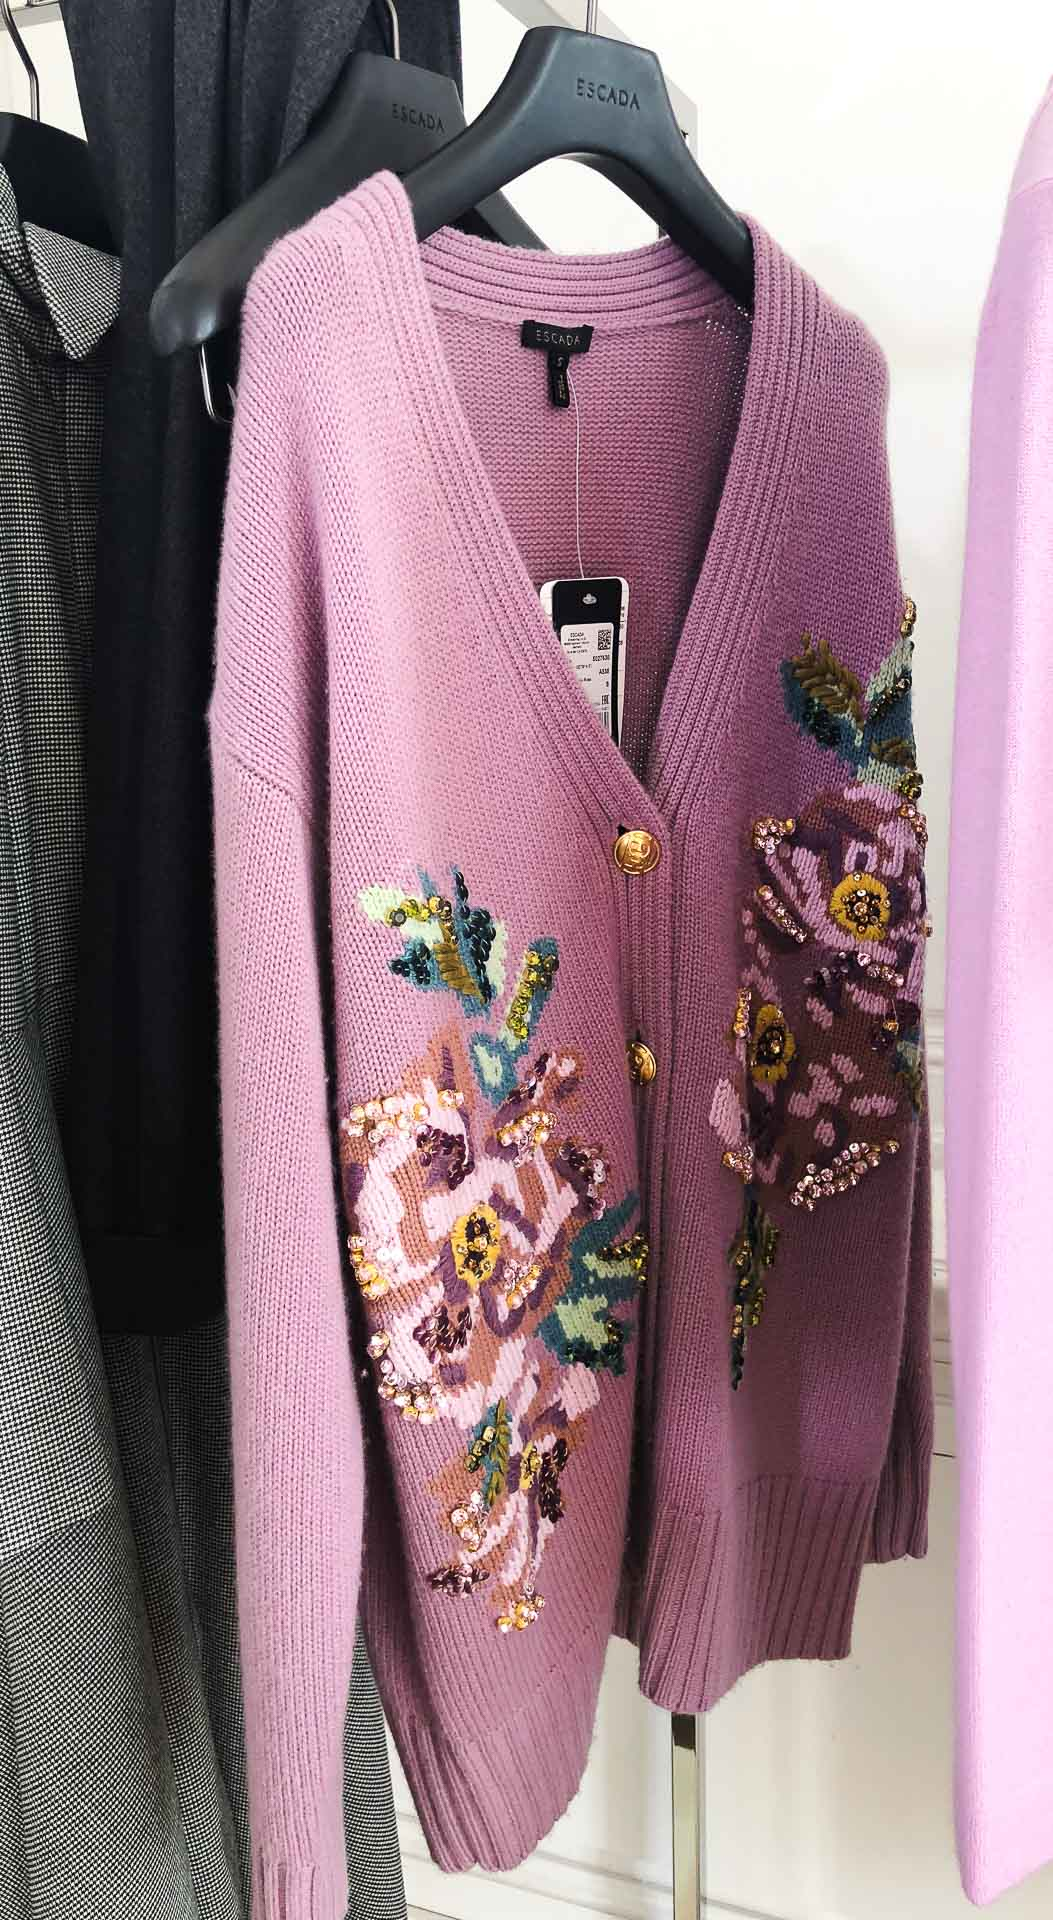 Brunette from Wall Street Escada pink floral cardigan